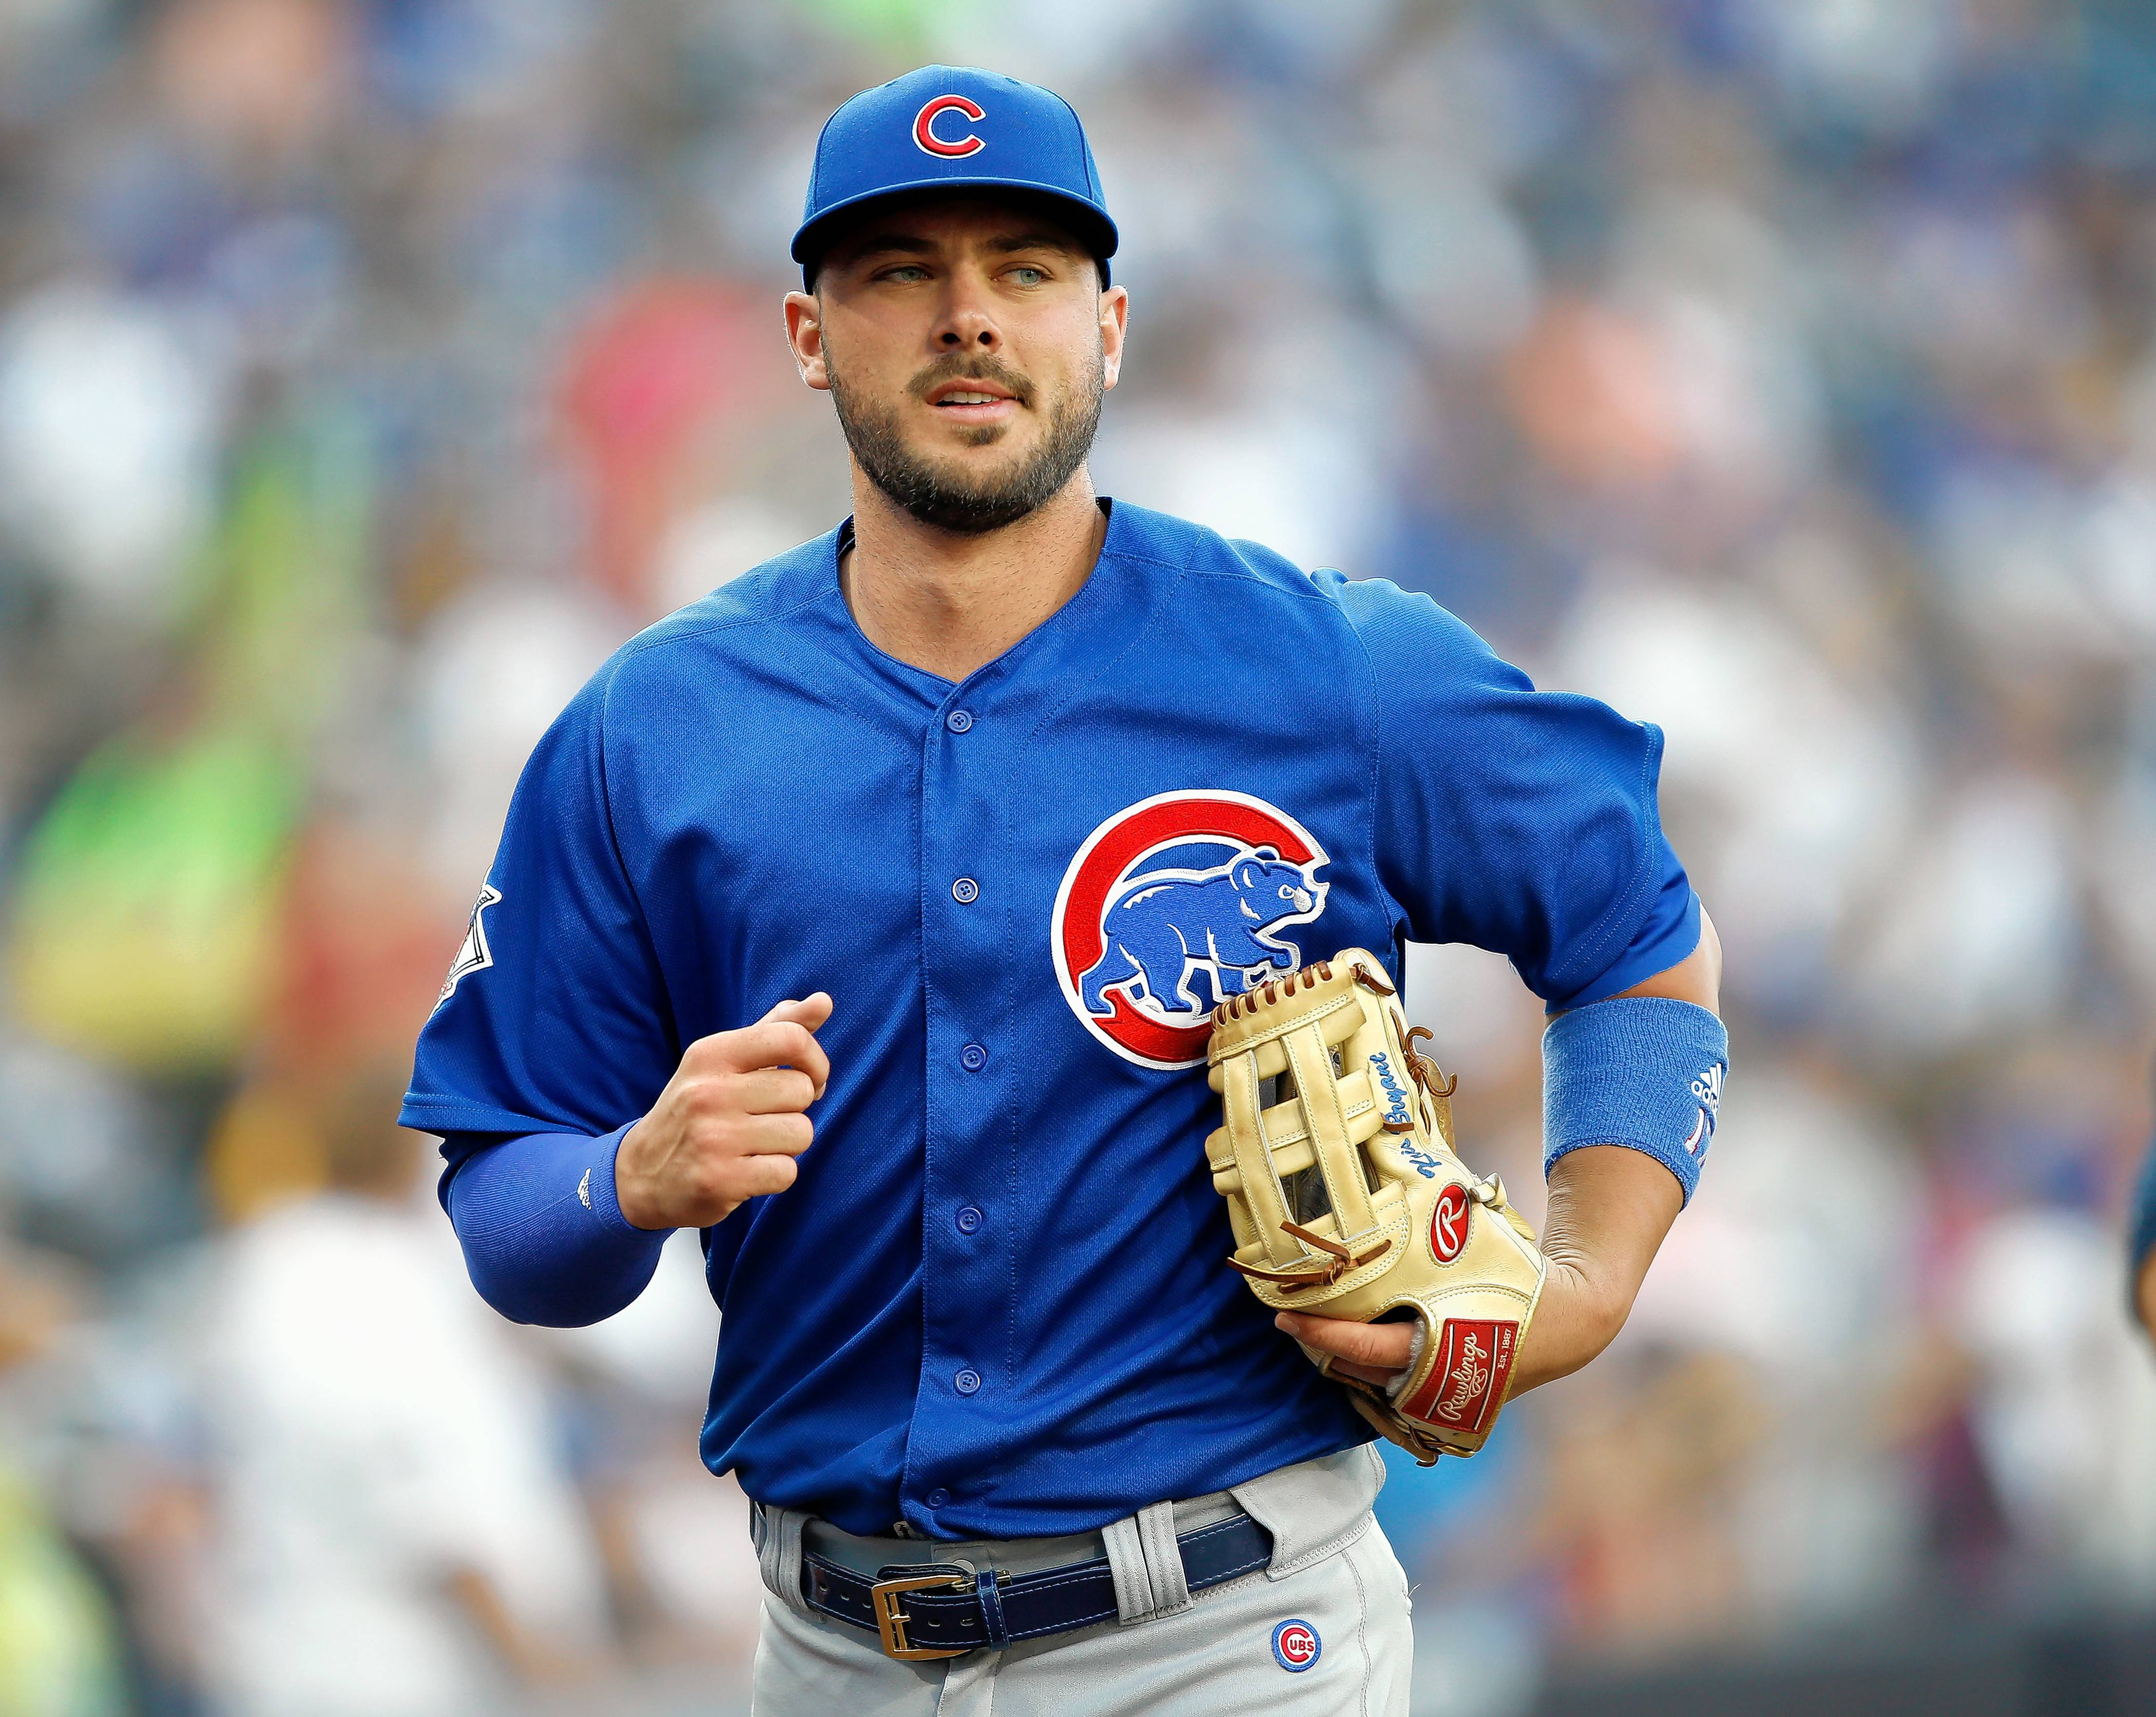 The Chicago Cubs placed third baseman Kris Bryant on the 10-day disabled list Thursday with a left-shoulder ailment.